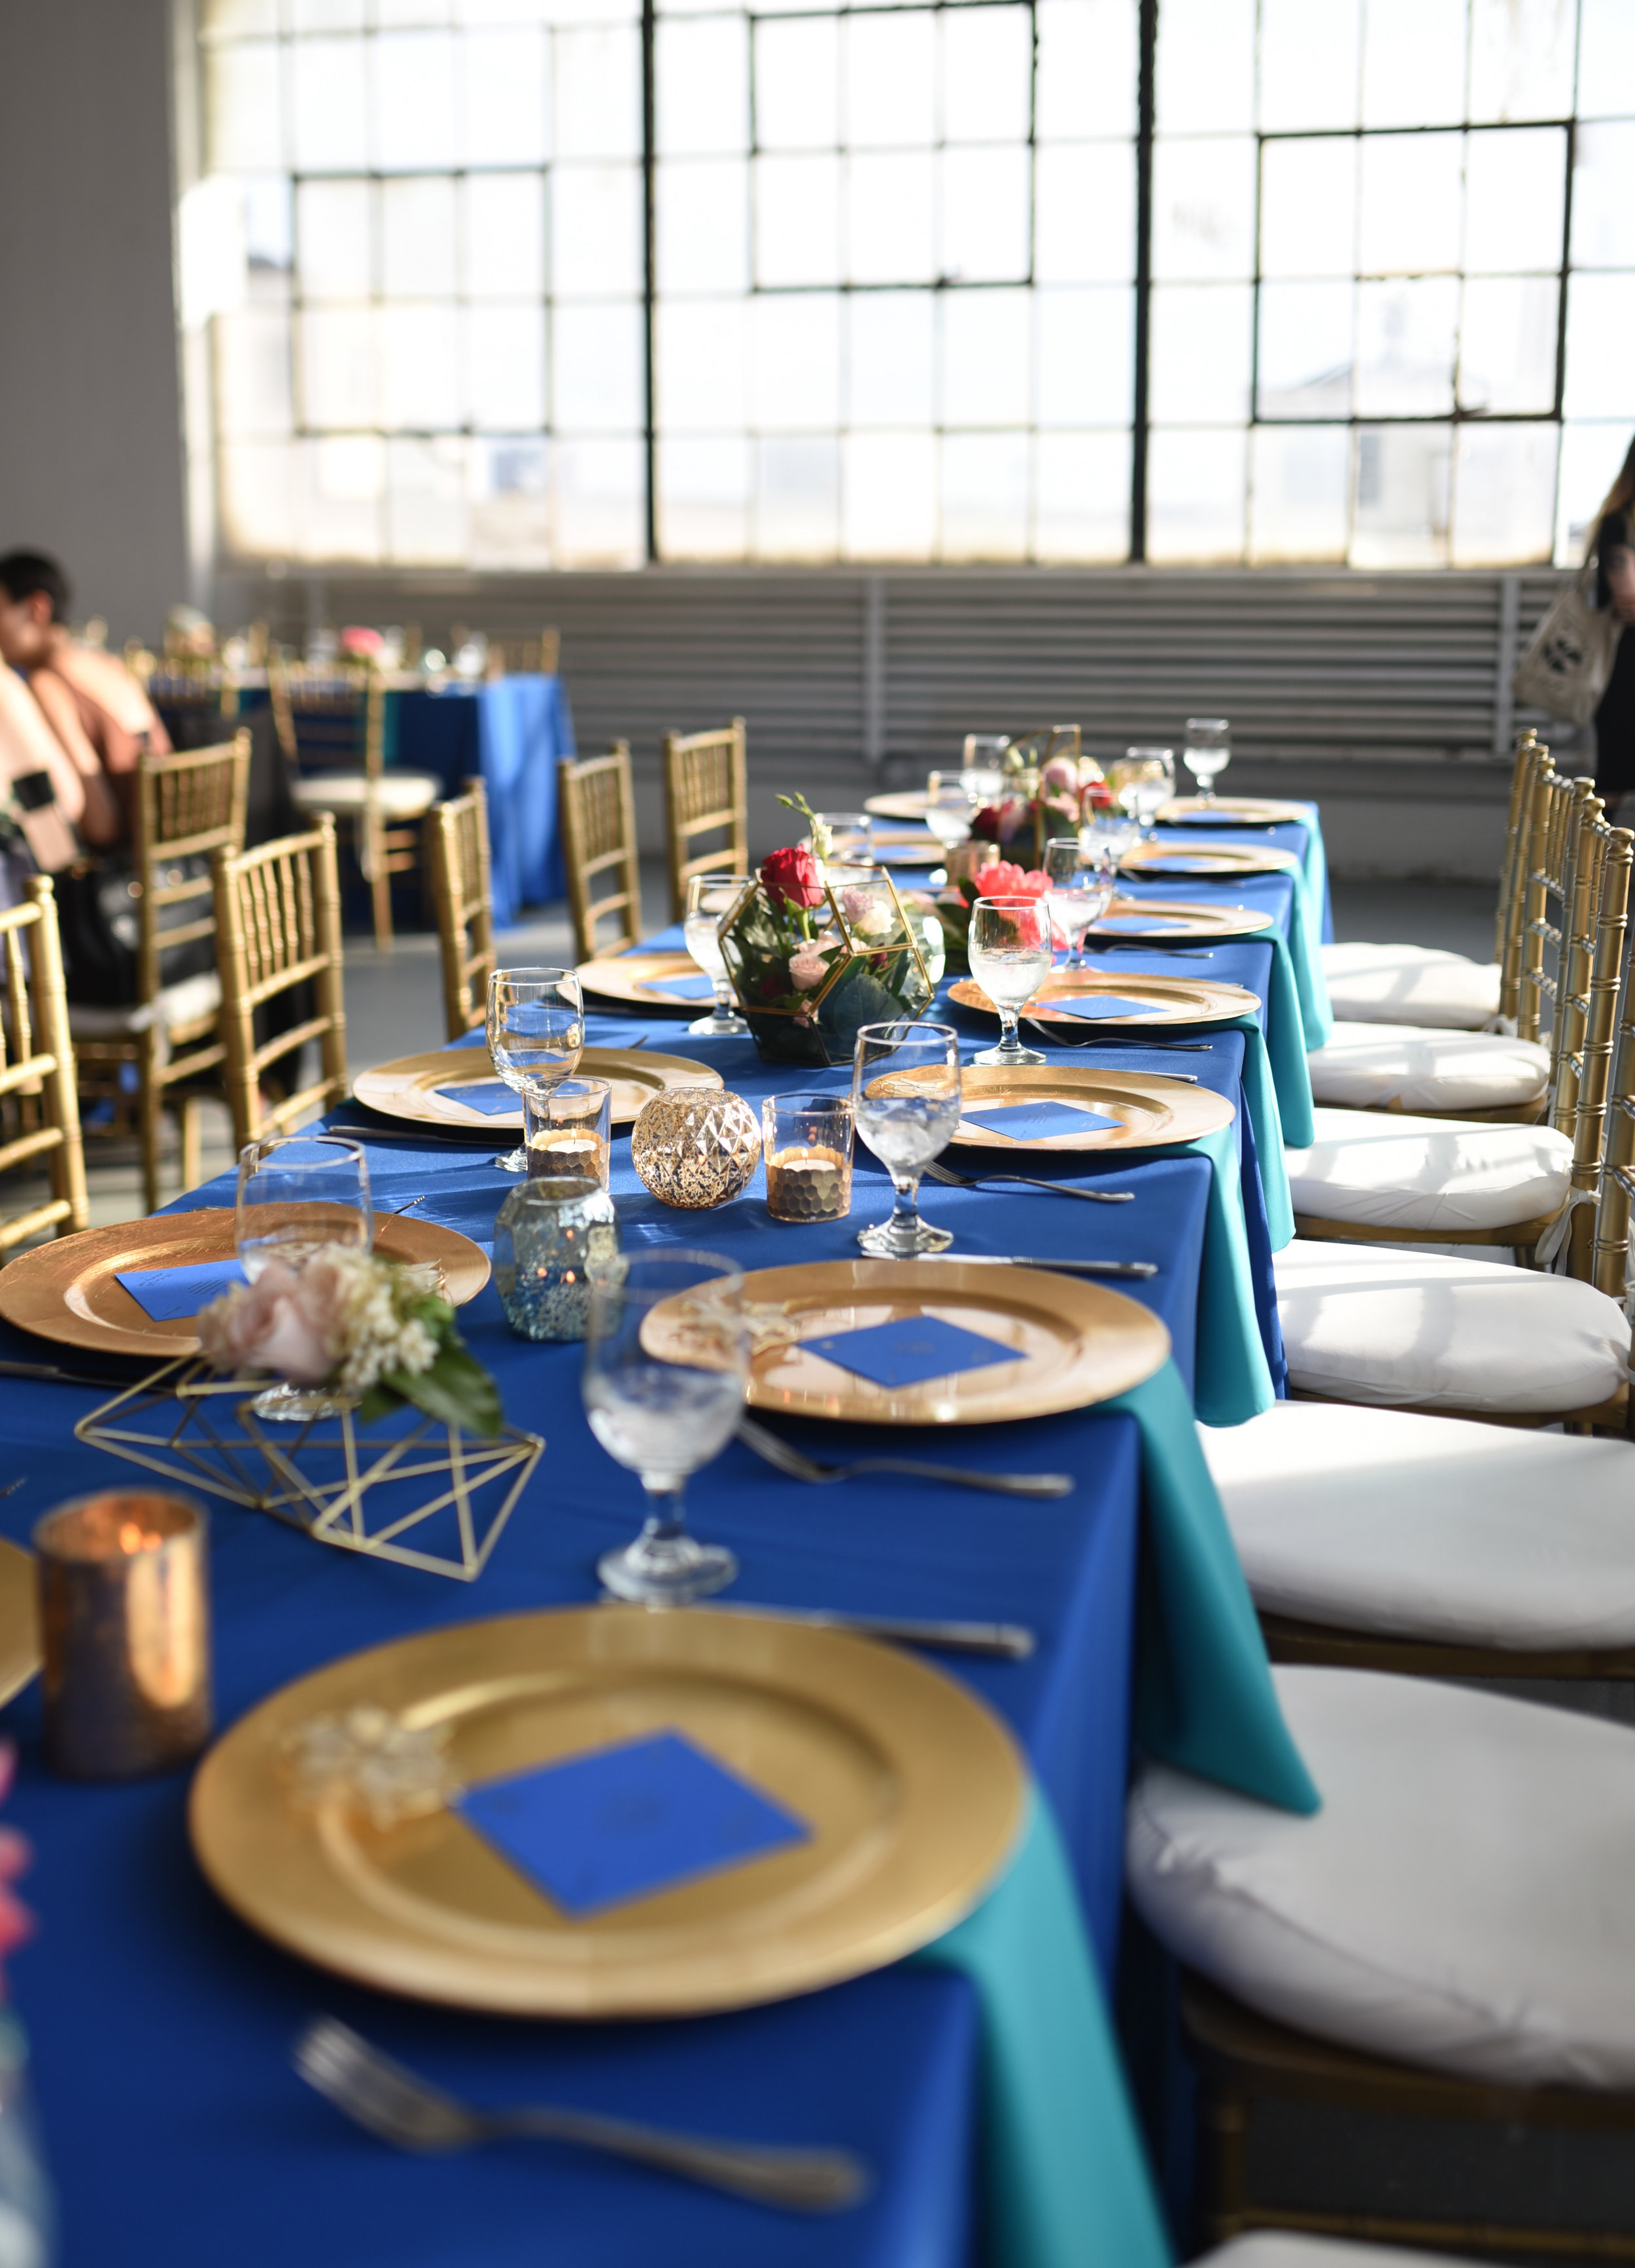 Spread through the center of the tables were floral terrariums, candles and lanterns, and geometric shapes with flower accents